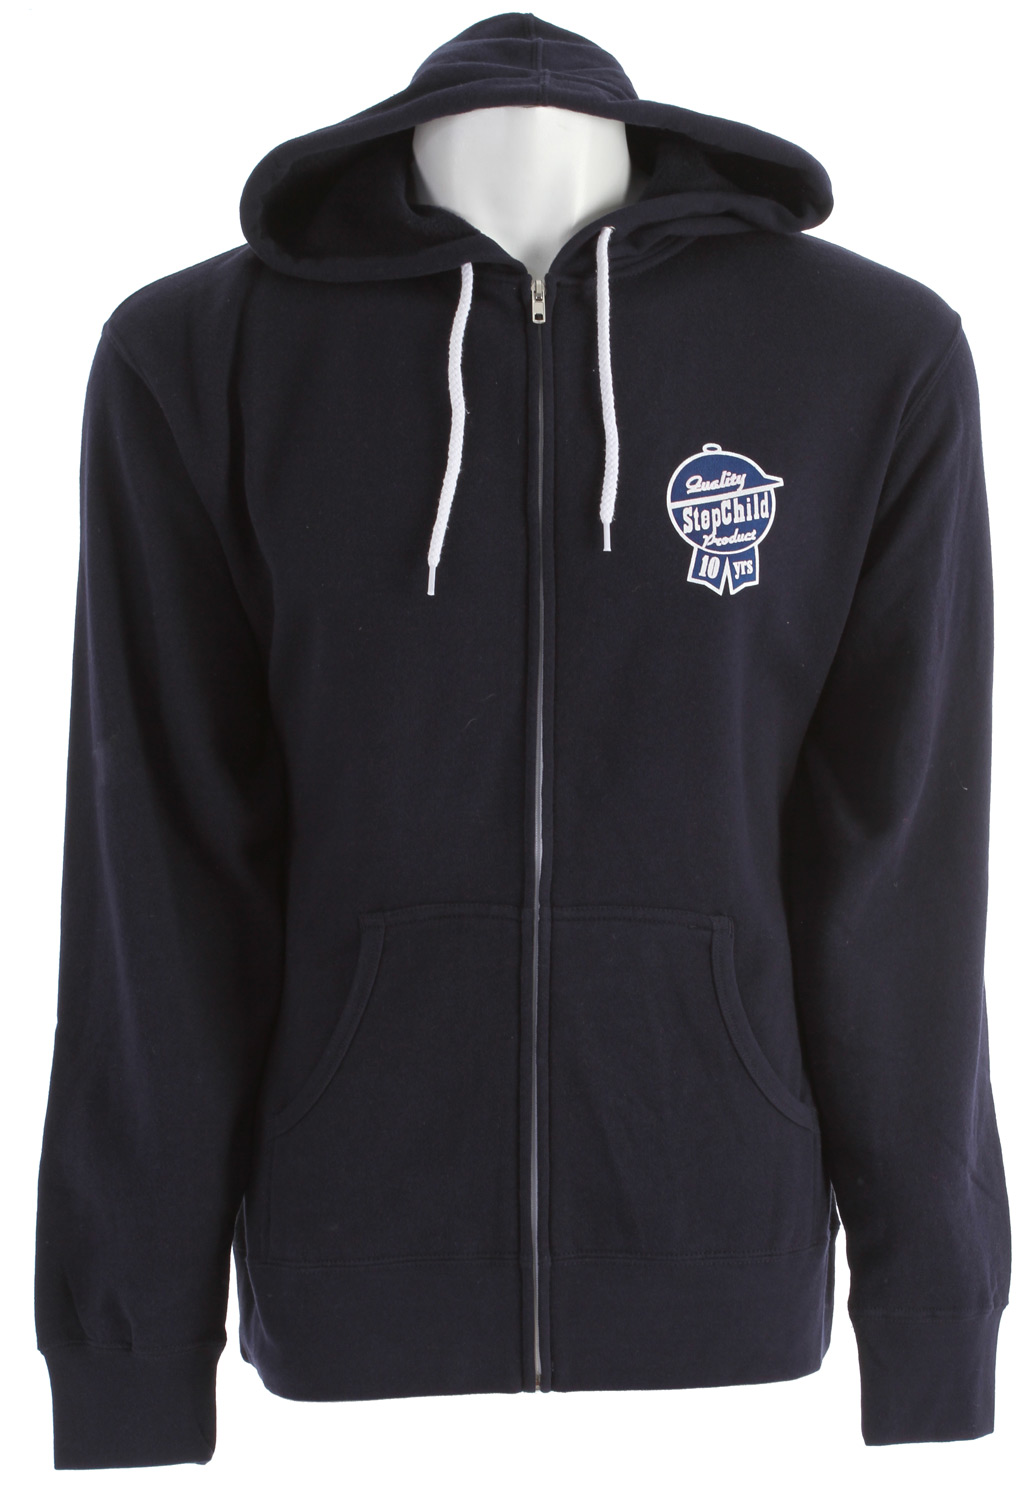 Guns and Military Key Features of the Stepchild Latchkey Fleece Zip Hoodie Navy: Light weight fleece Screened logo on chest/back - $33.95